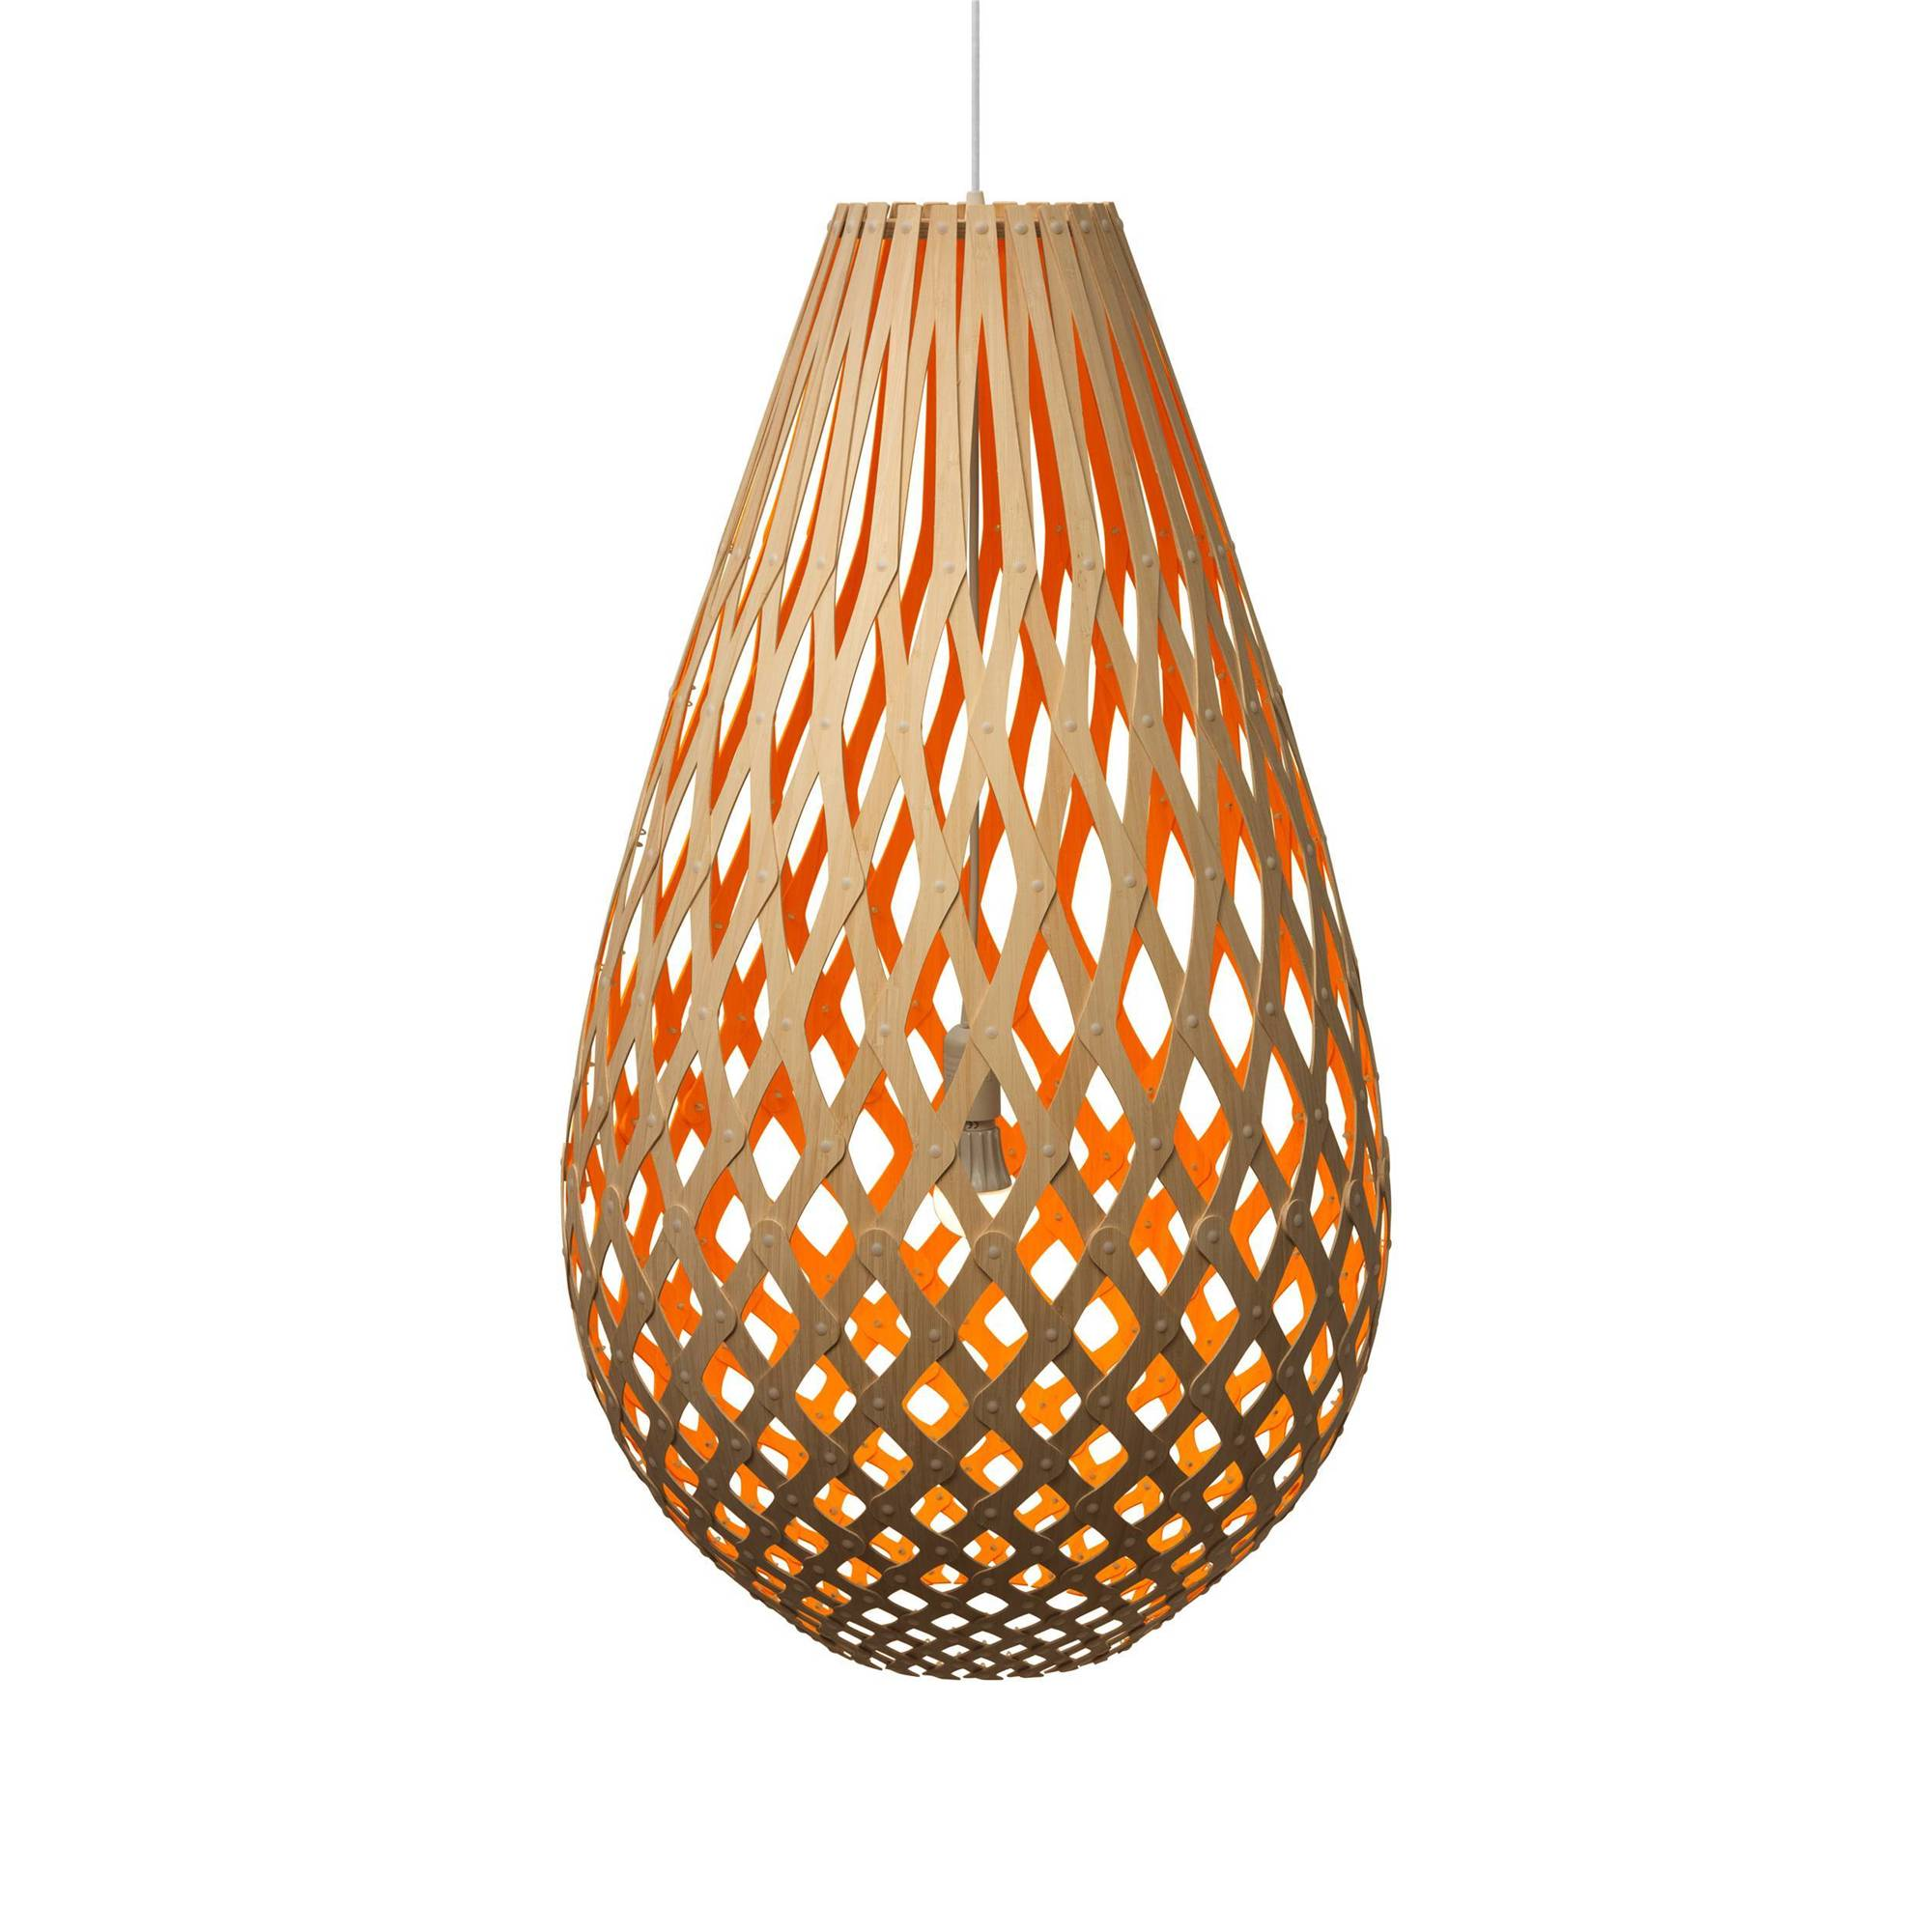 Koura Pendant Light: 1000 + Orange